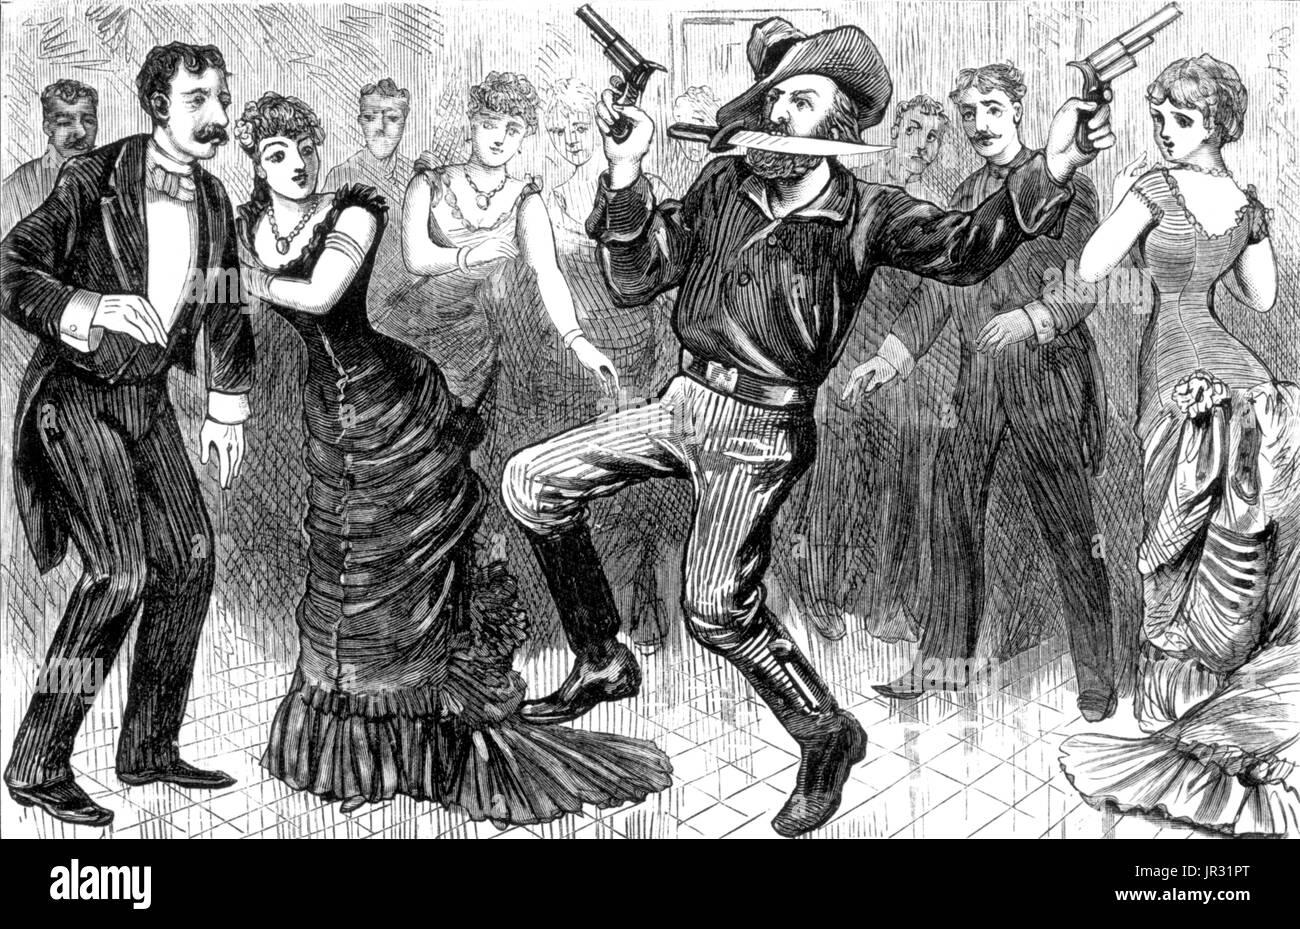 A drunken cowboy shoots ip a ballroom in Leadville, Colorado. The historic American cowboy of the late 19th century Stock Photo